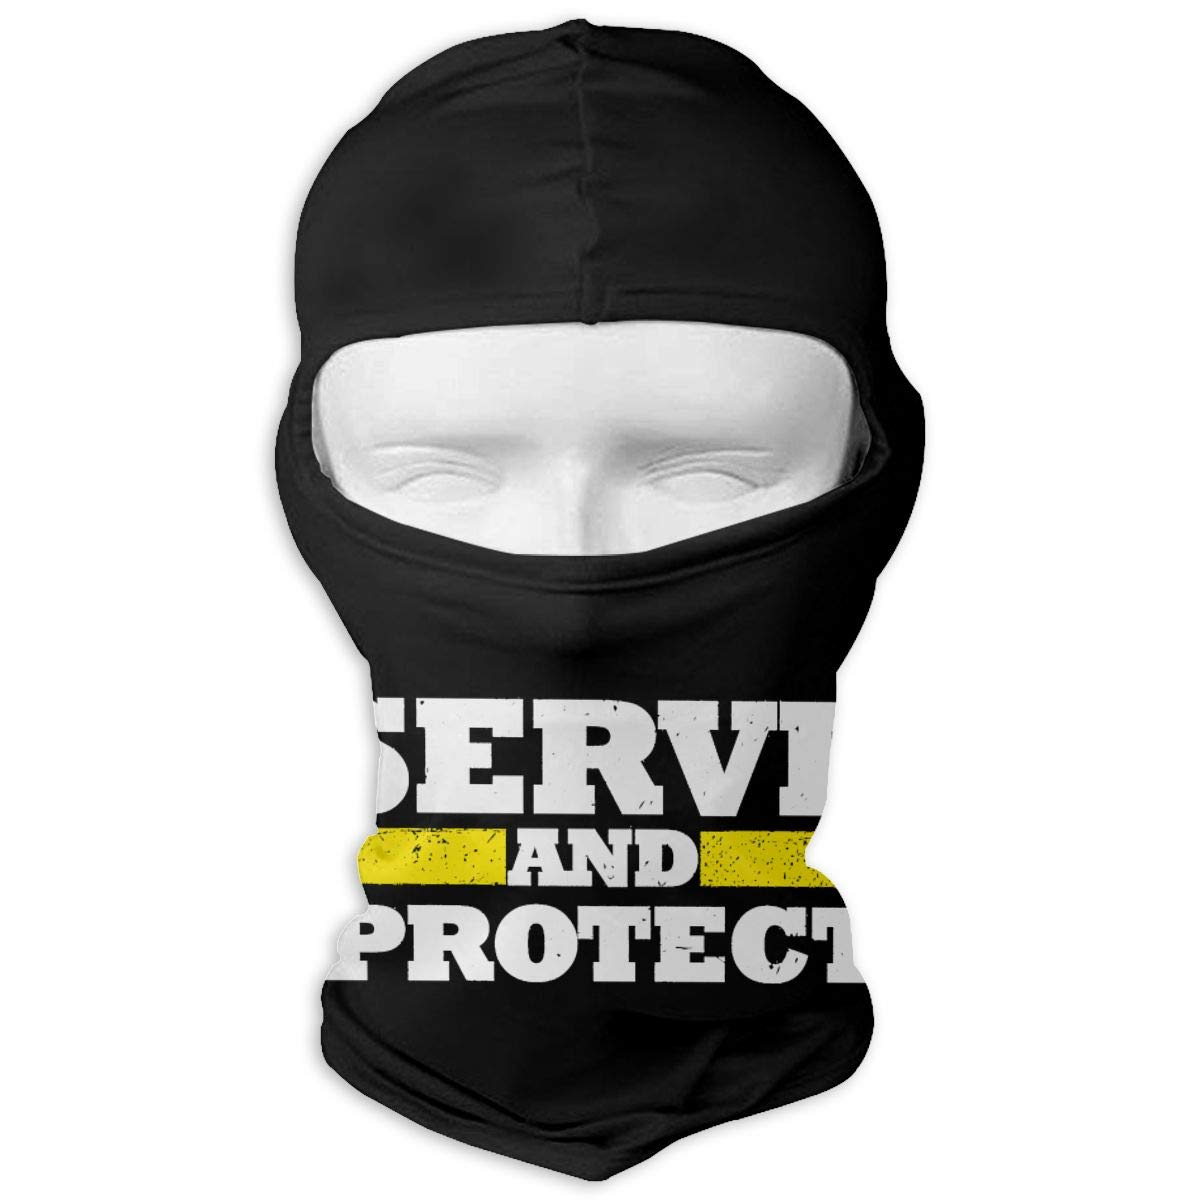 911 Dispatcher Protect and Serve Full Outdoor Cycling Ski Motorcycle Balaclava Mask Sunscreen Hat Windproof Cap